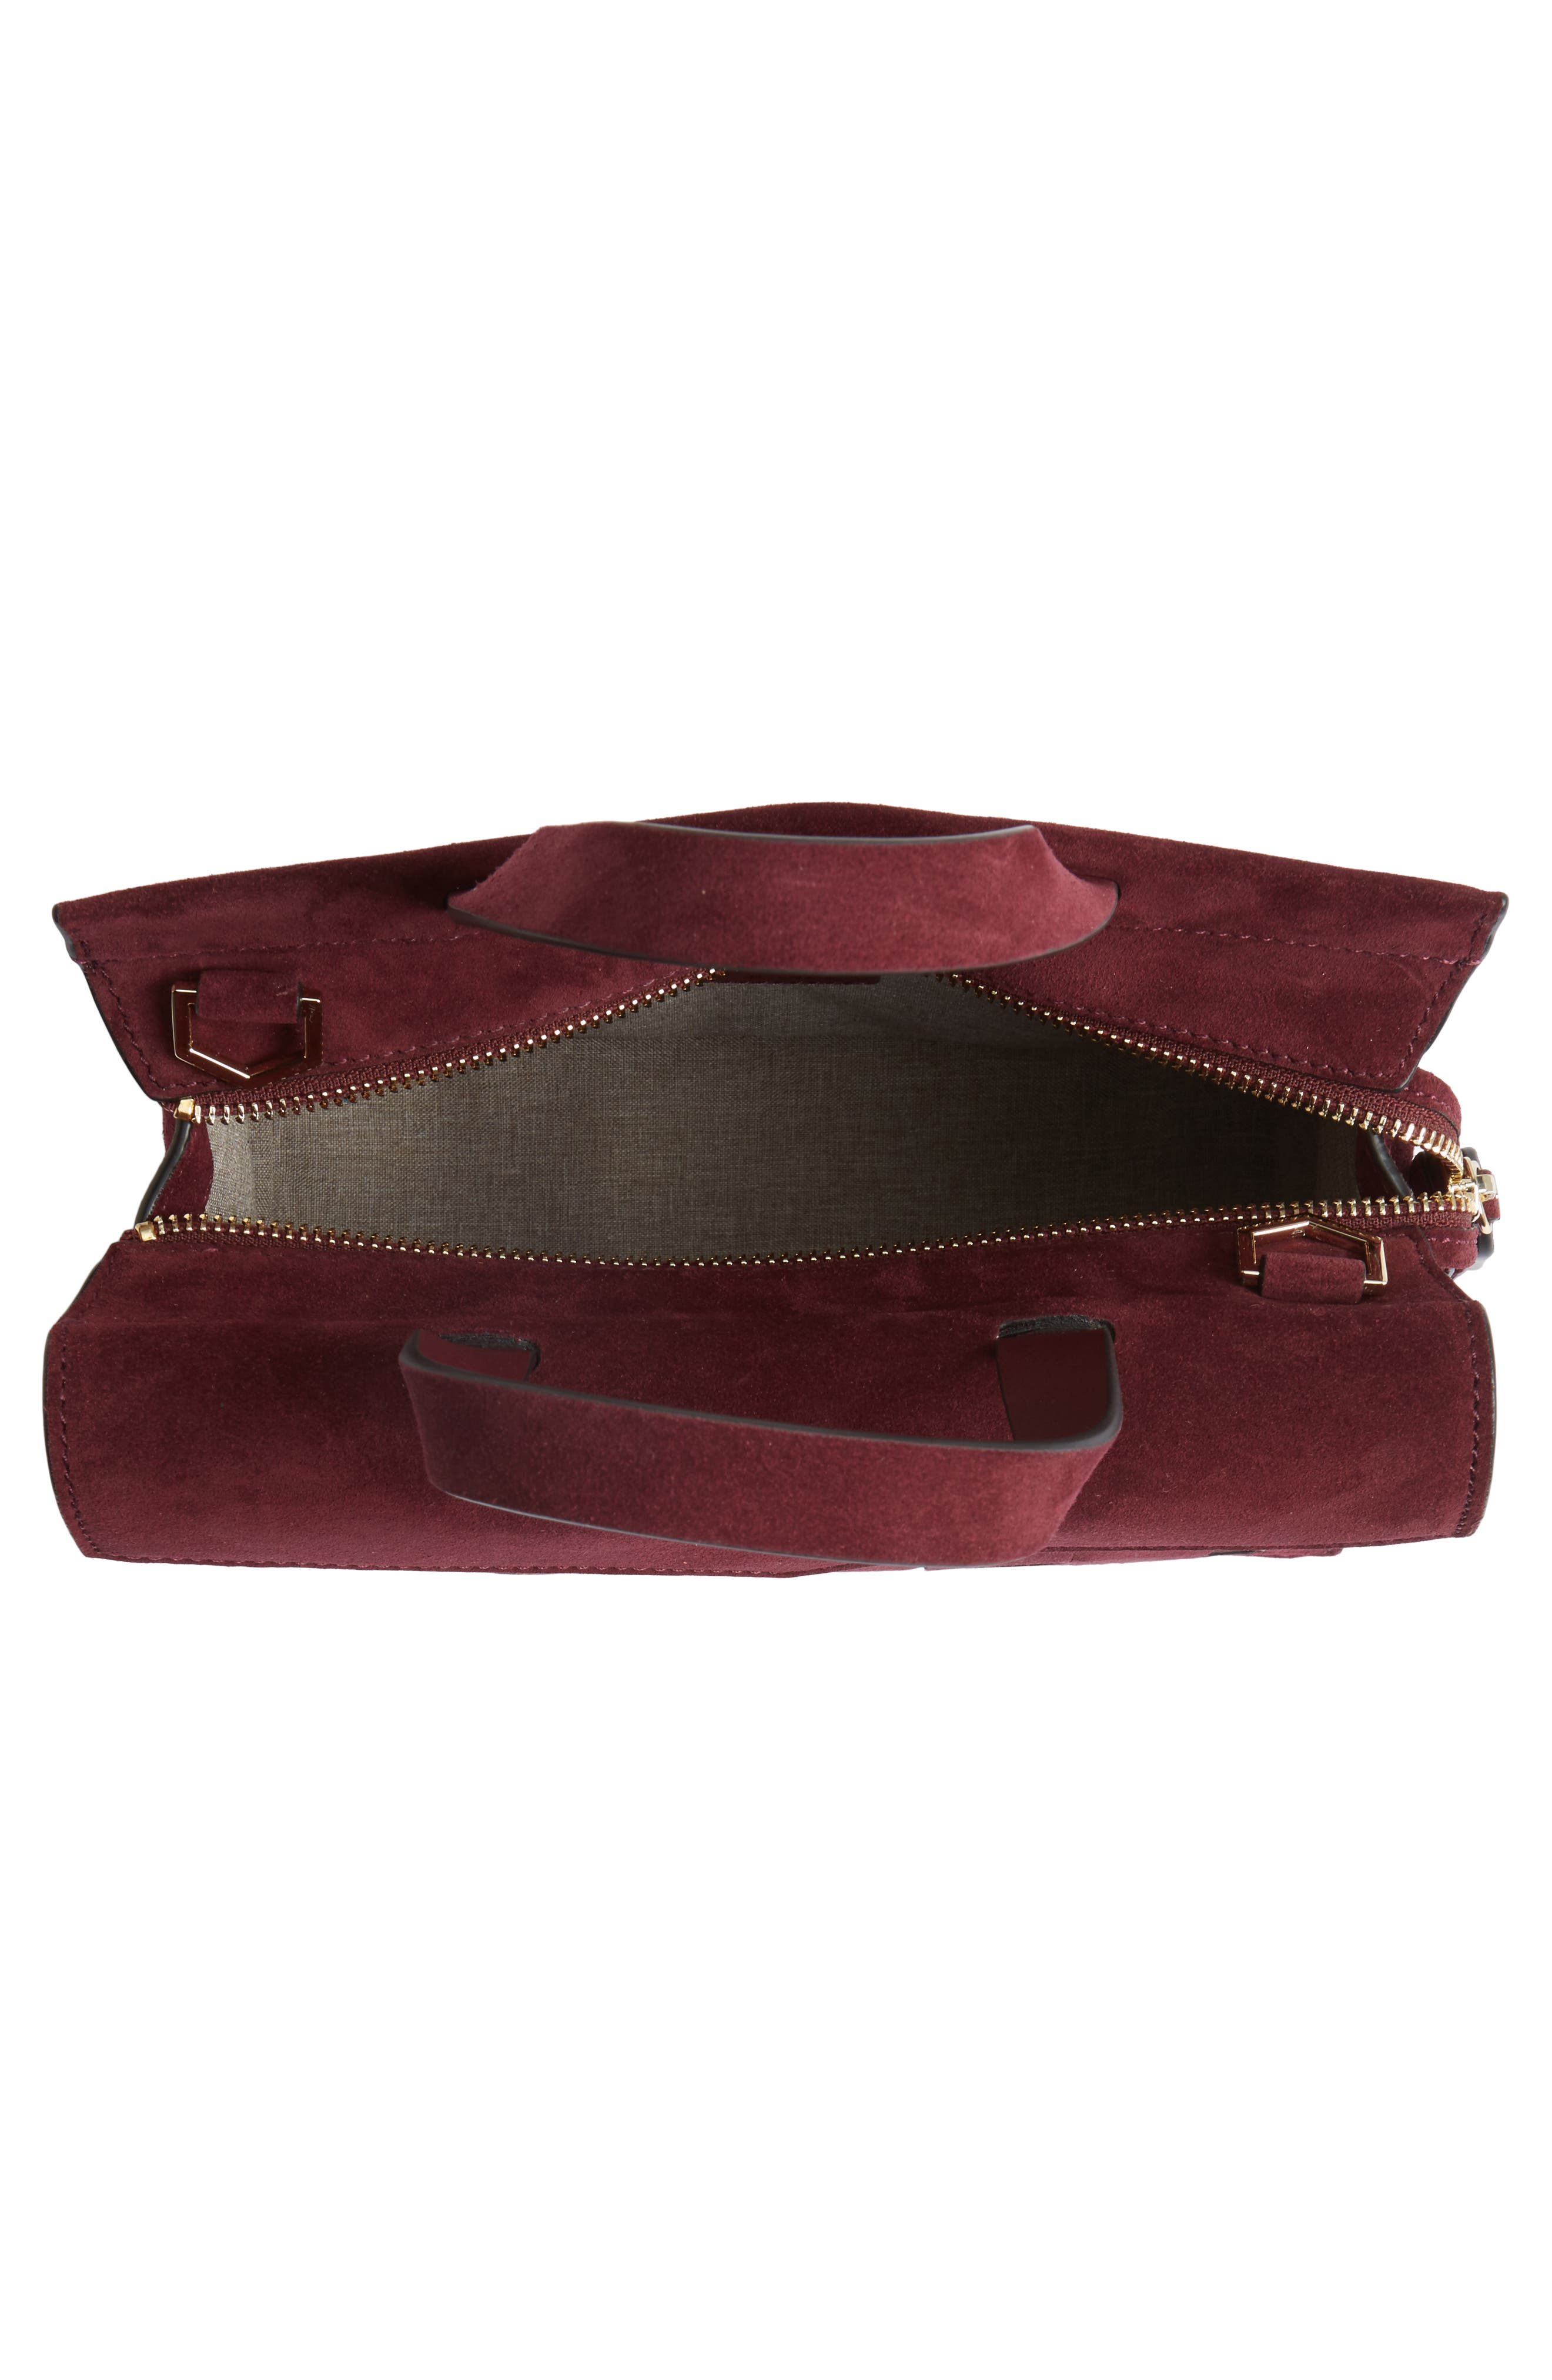 Alternate Image 3  - WELDEN Small Voyager Leather Convertible Satchel